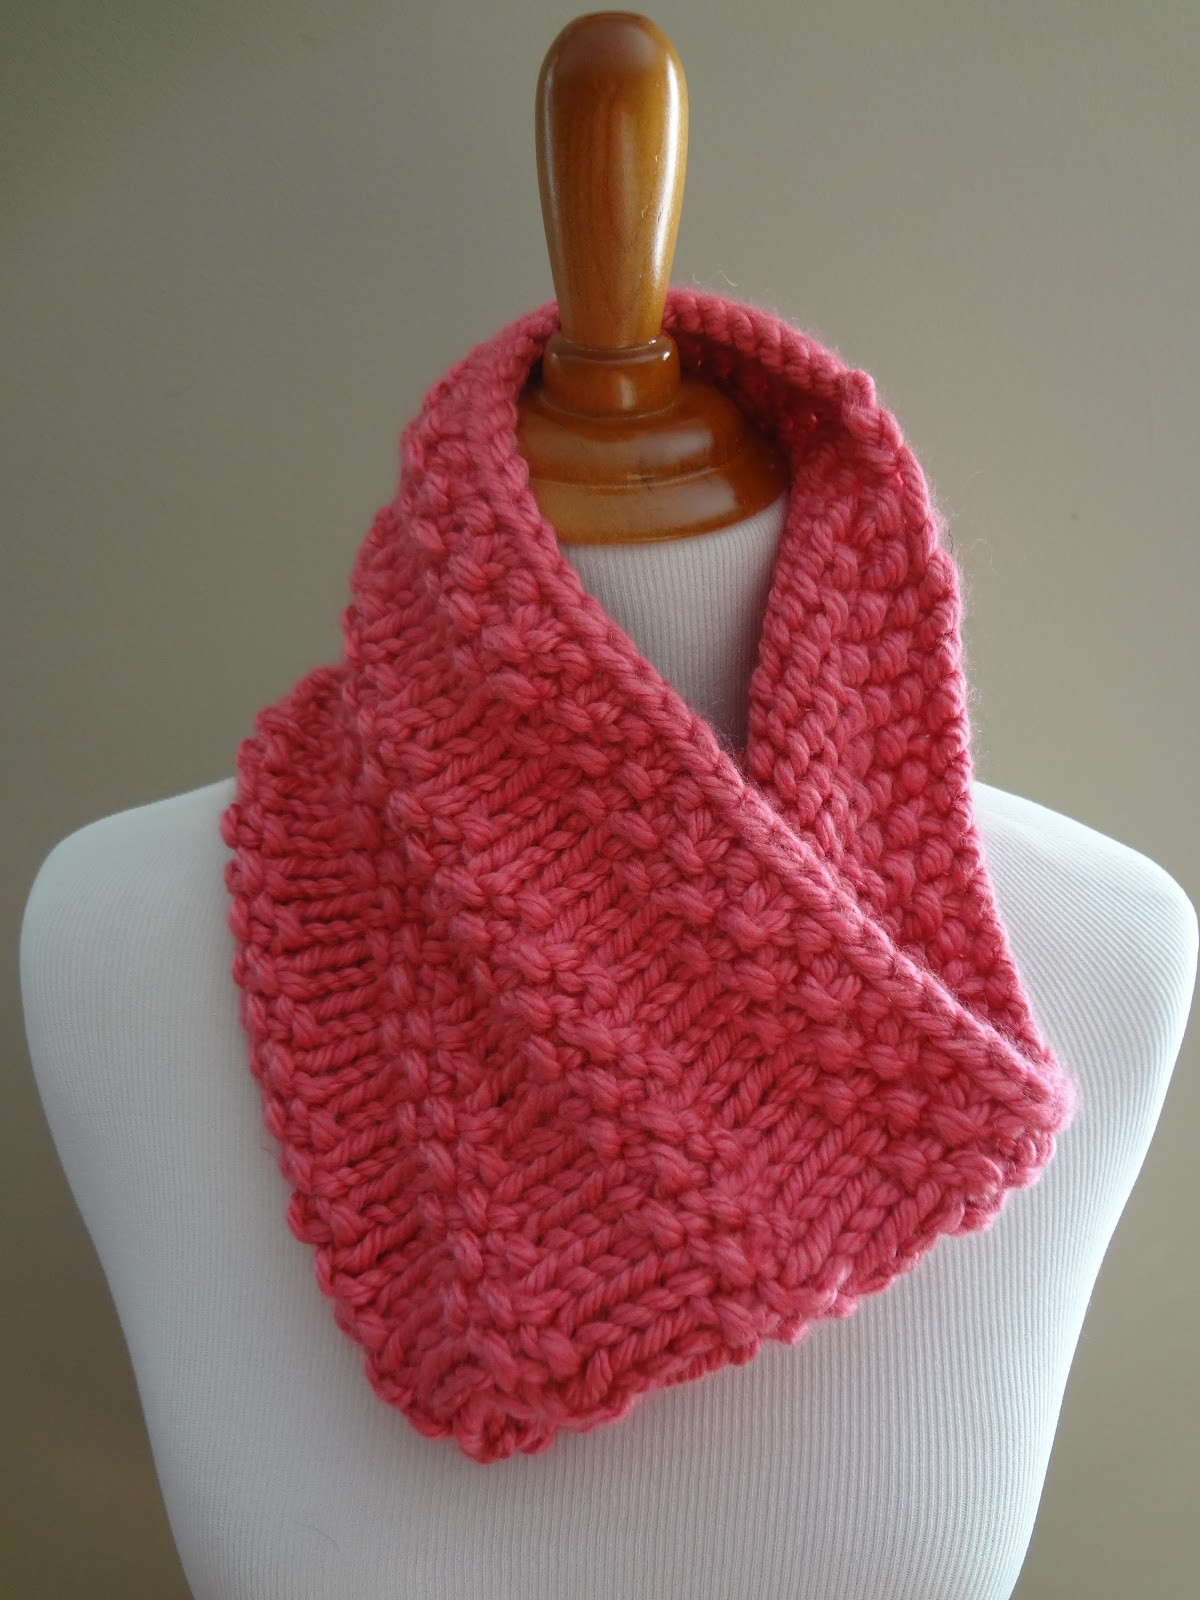 Easy Cowl Knitting Patterns : Free Knitted Cowl Scarves Patterns Car Interior Design